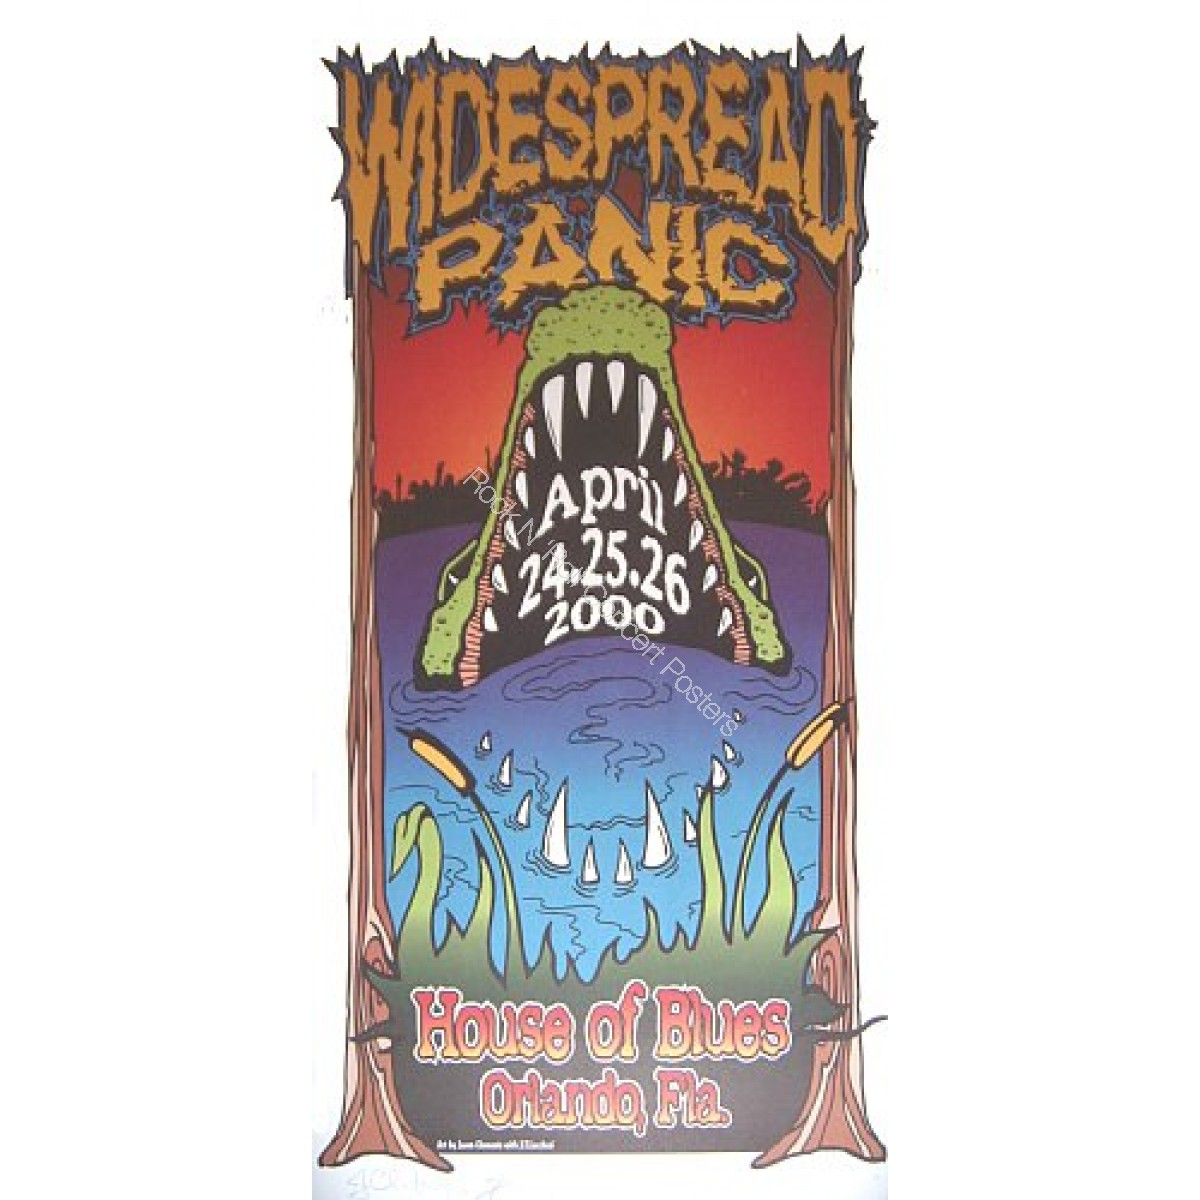 Widespread Panic @ The House of Blues Orlando 4/24-26/00